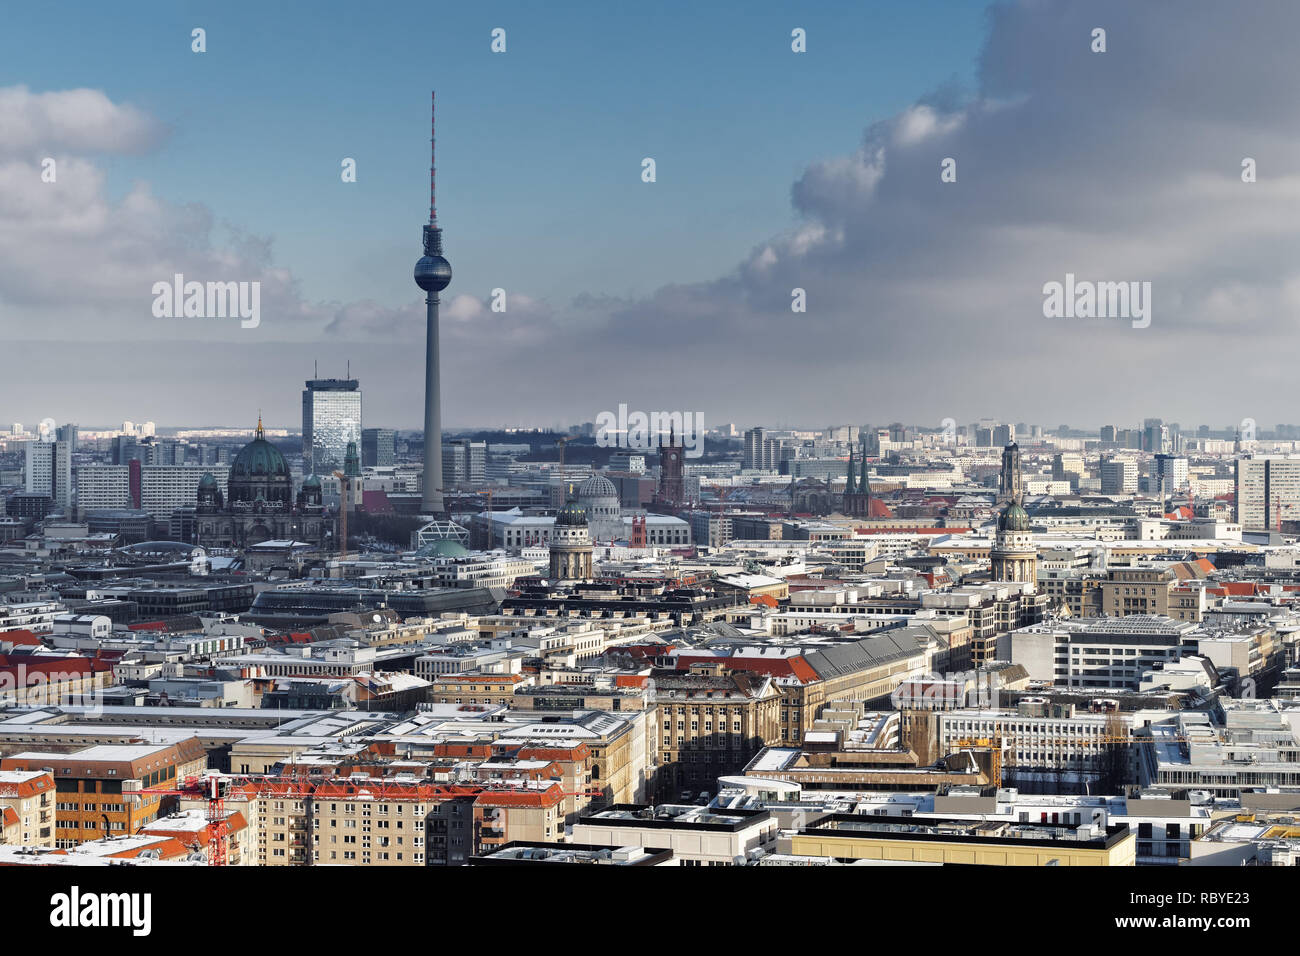 Wide view over the sea of Berlin in winter with a striking cloud formation, TV tower as the main motif - Location: Germany, Berlin, Potsdamer Platz - Stock Image